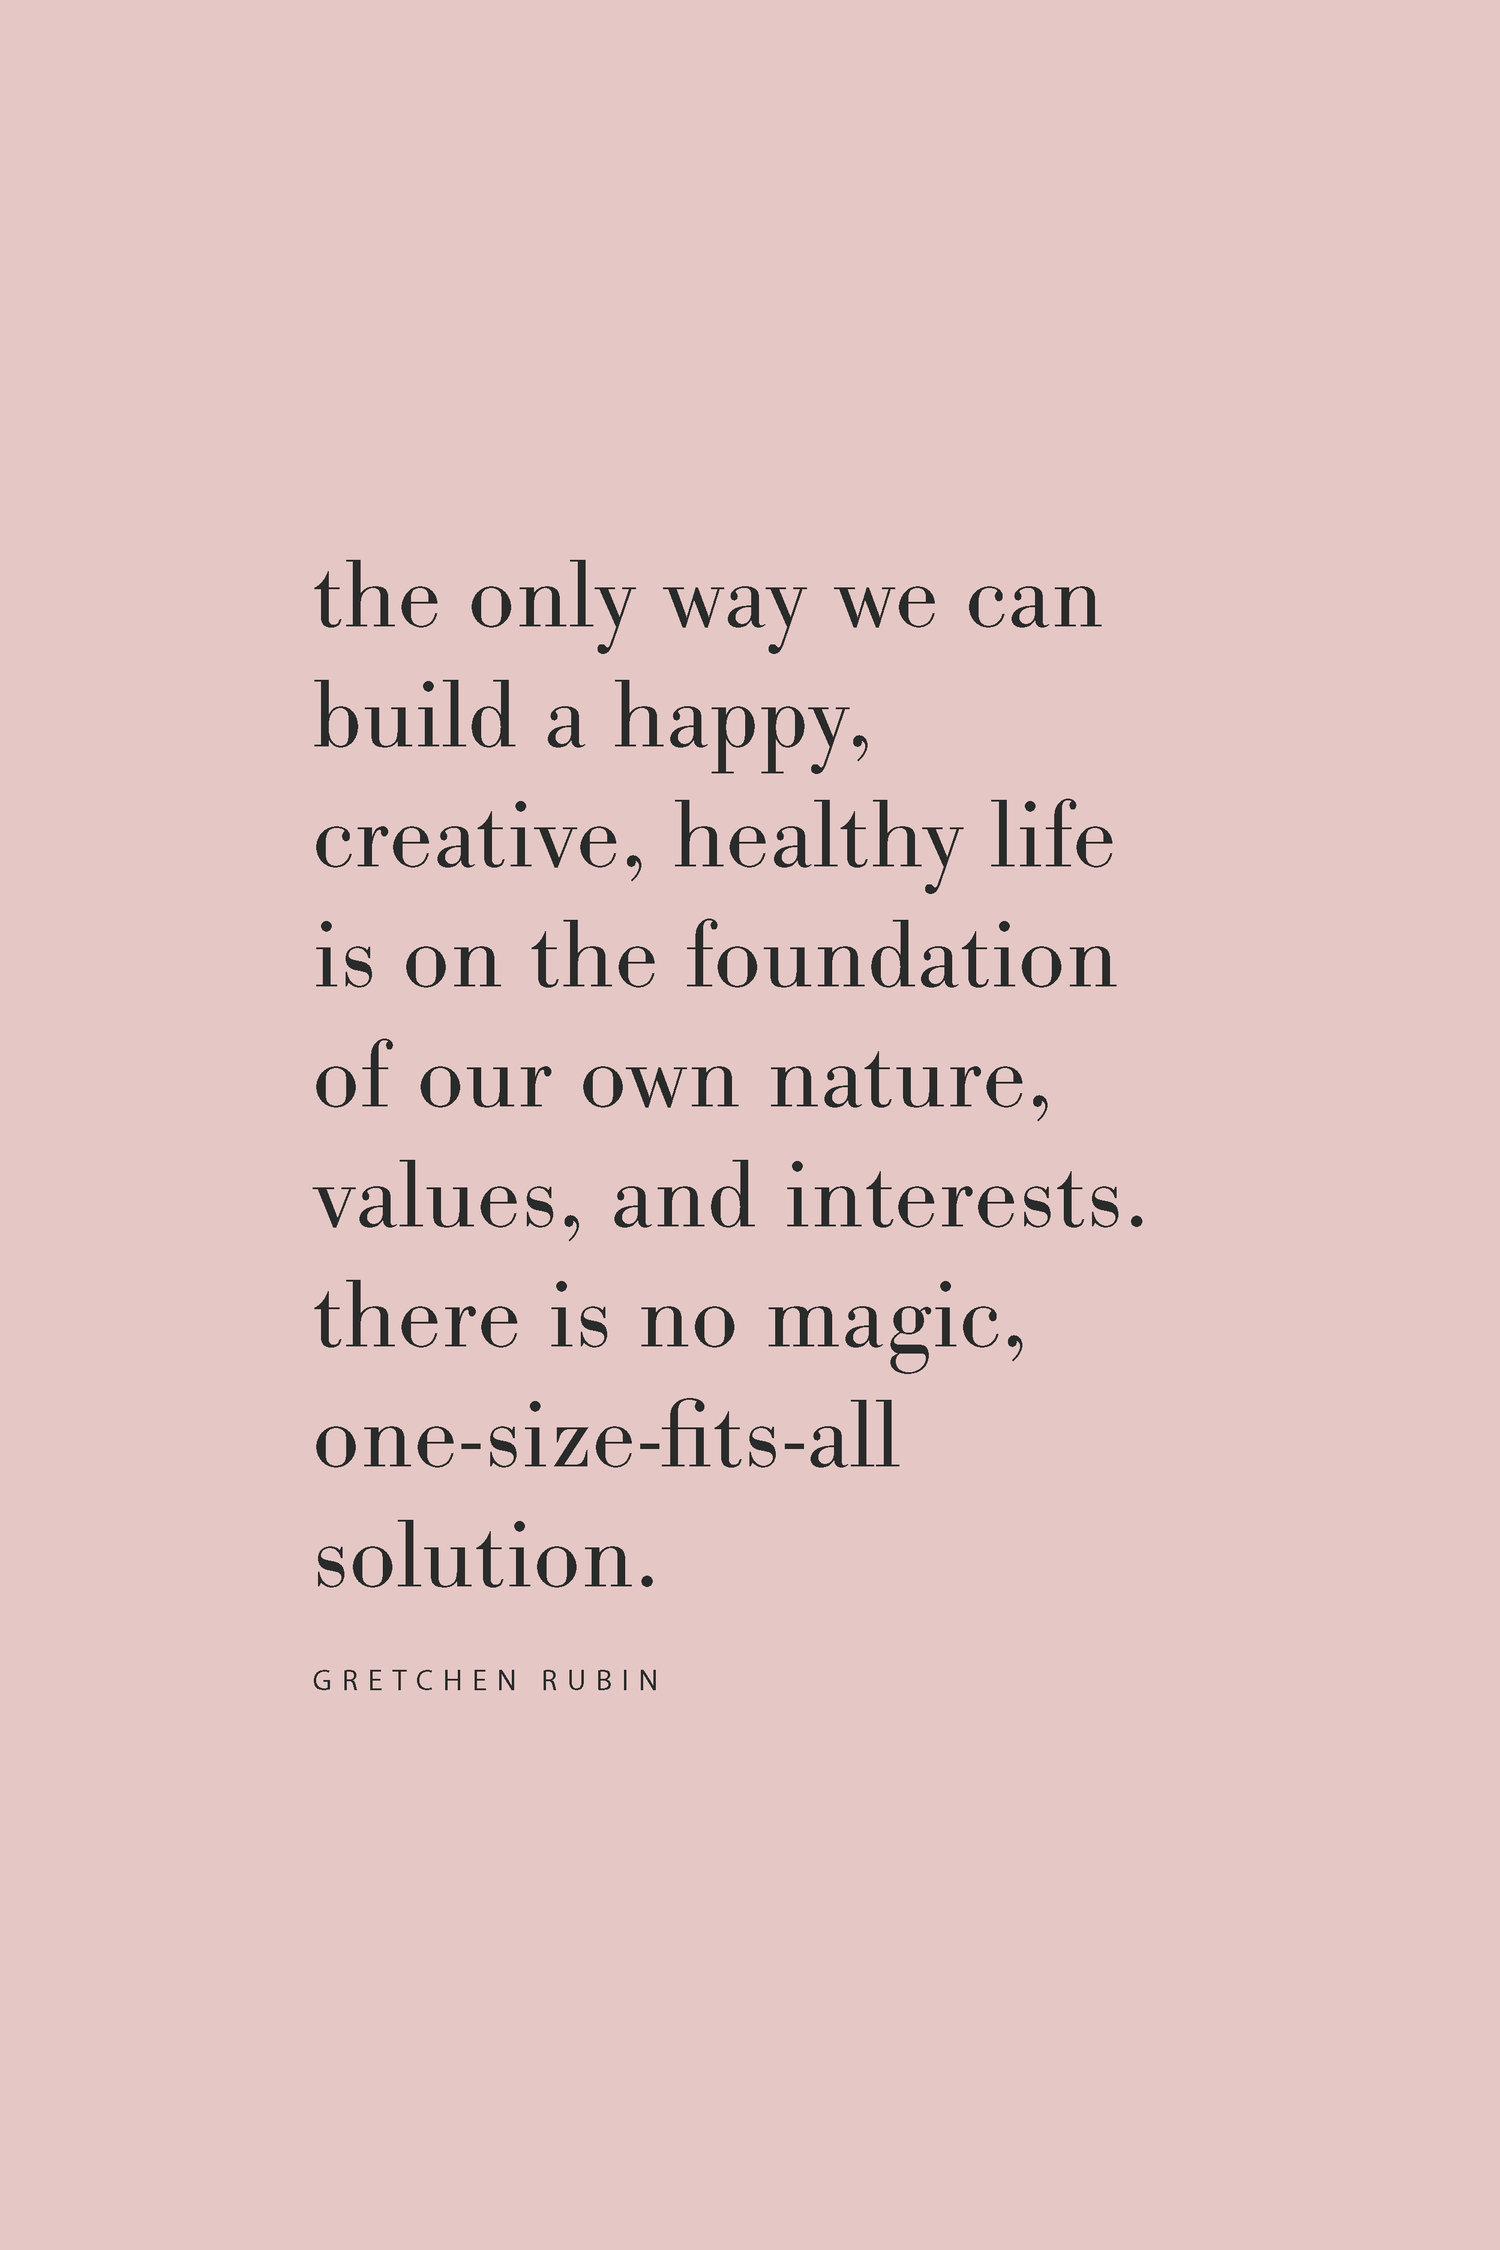 Quote+from+Gretchen+Rubin+on+the+Feel+Good+Effect+podcast+on+building+a+happy%2C+healthy+life.+%23realfoodwholelife+%23feelgoodeffect+%23podcast+%23purpose?format=1500w